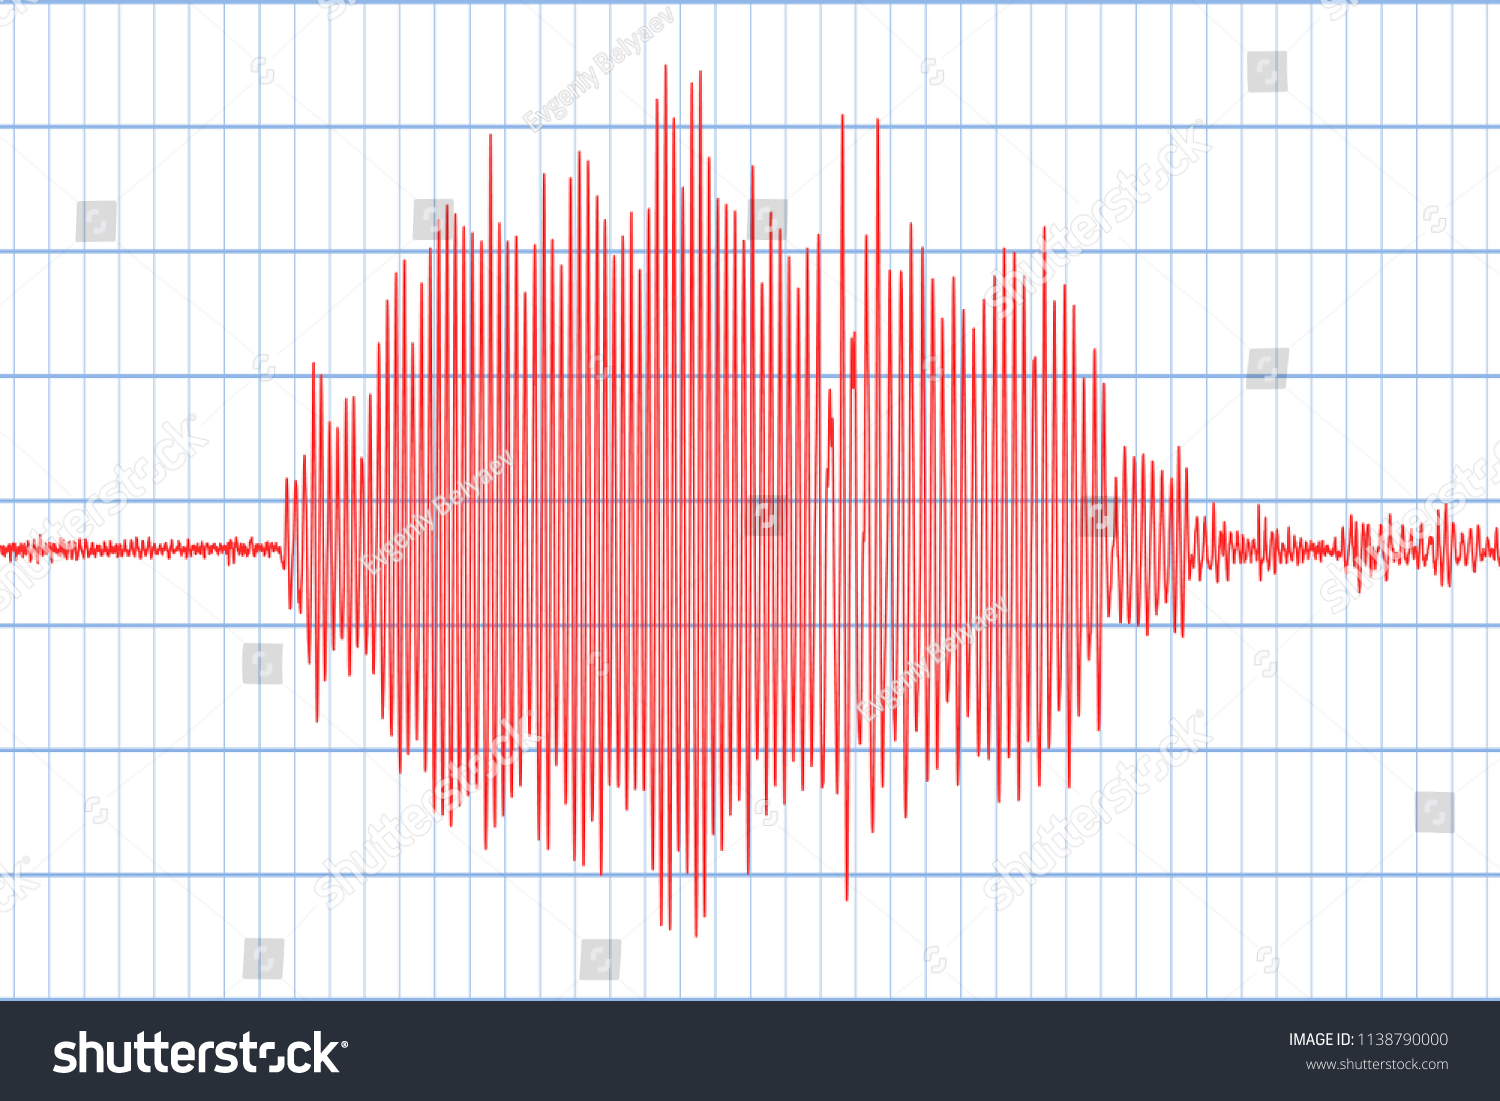 Seismograph Earthquake Seismic Activity Lie Detector Stock Vector Circuit And Audio Wave Diagram Illustration